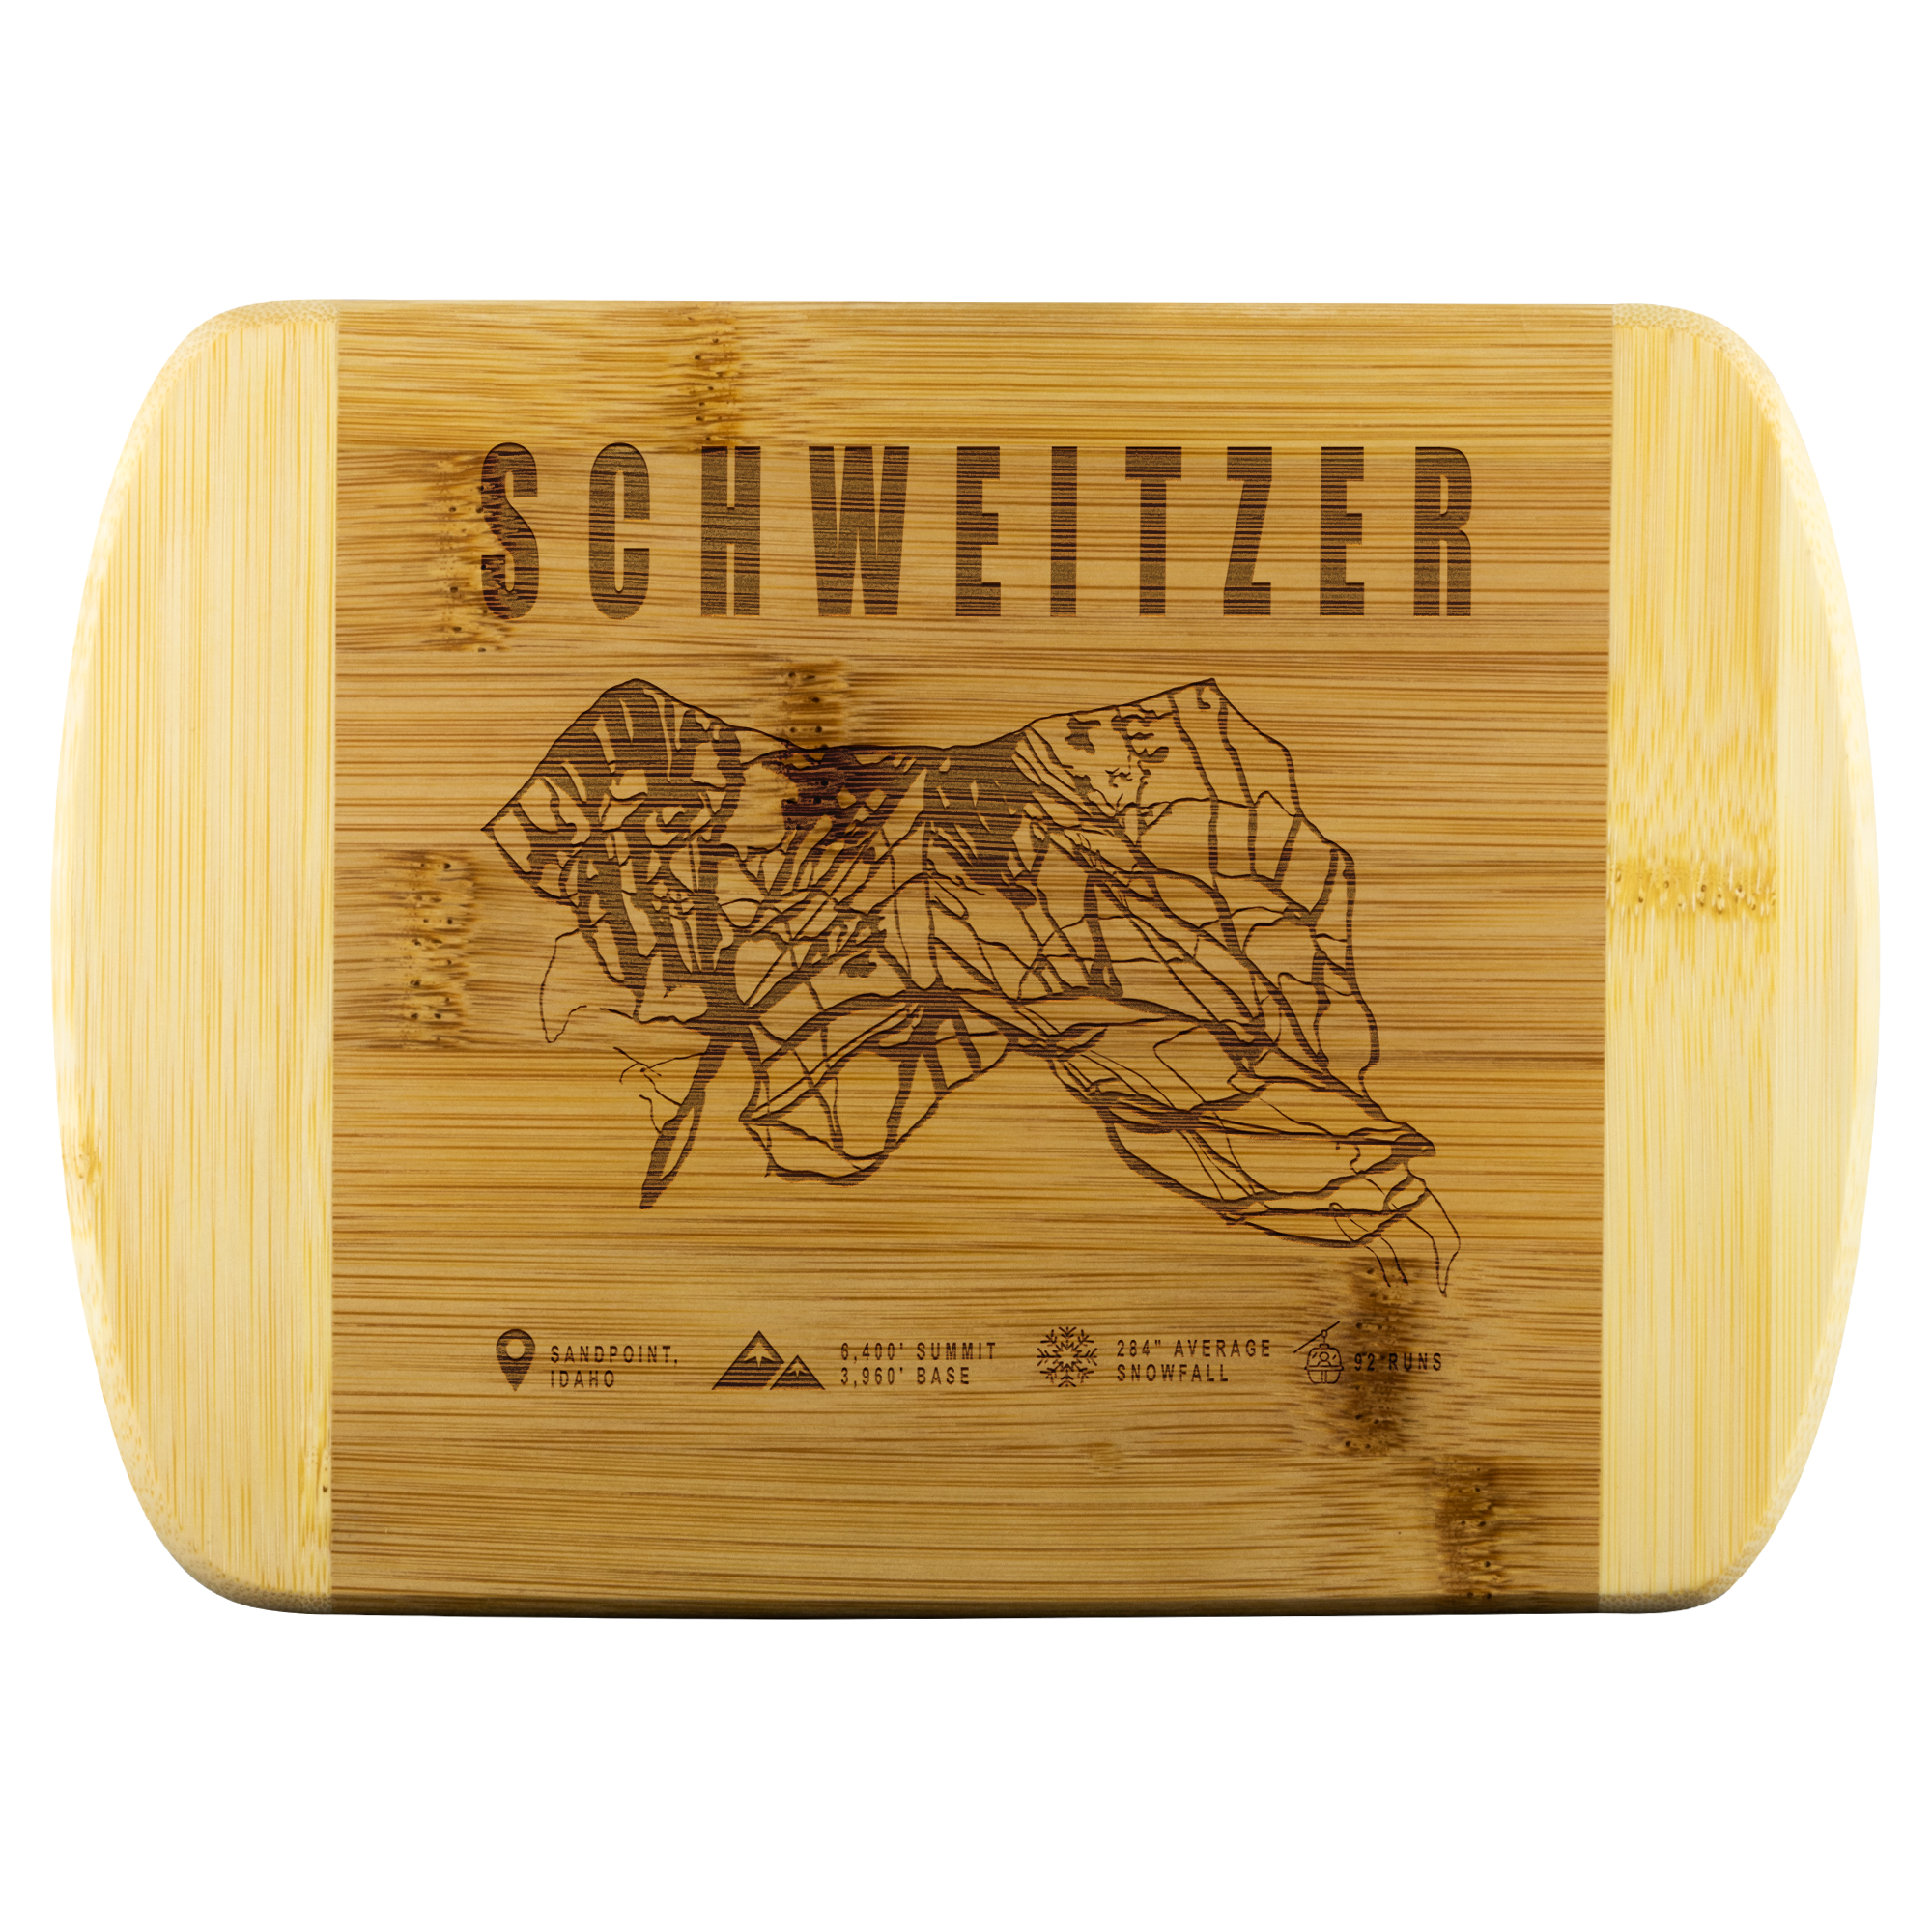 Schweitzer Idaho Ski-Resort Map Bamboo Cutting Board Round Edge